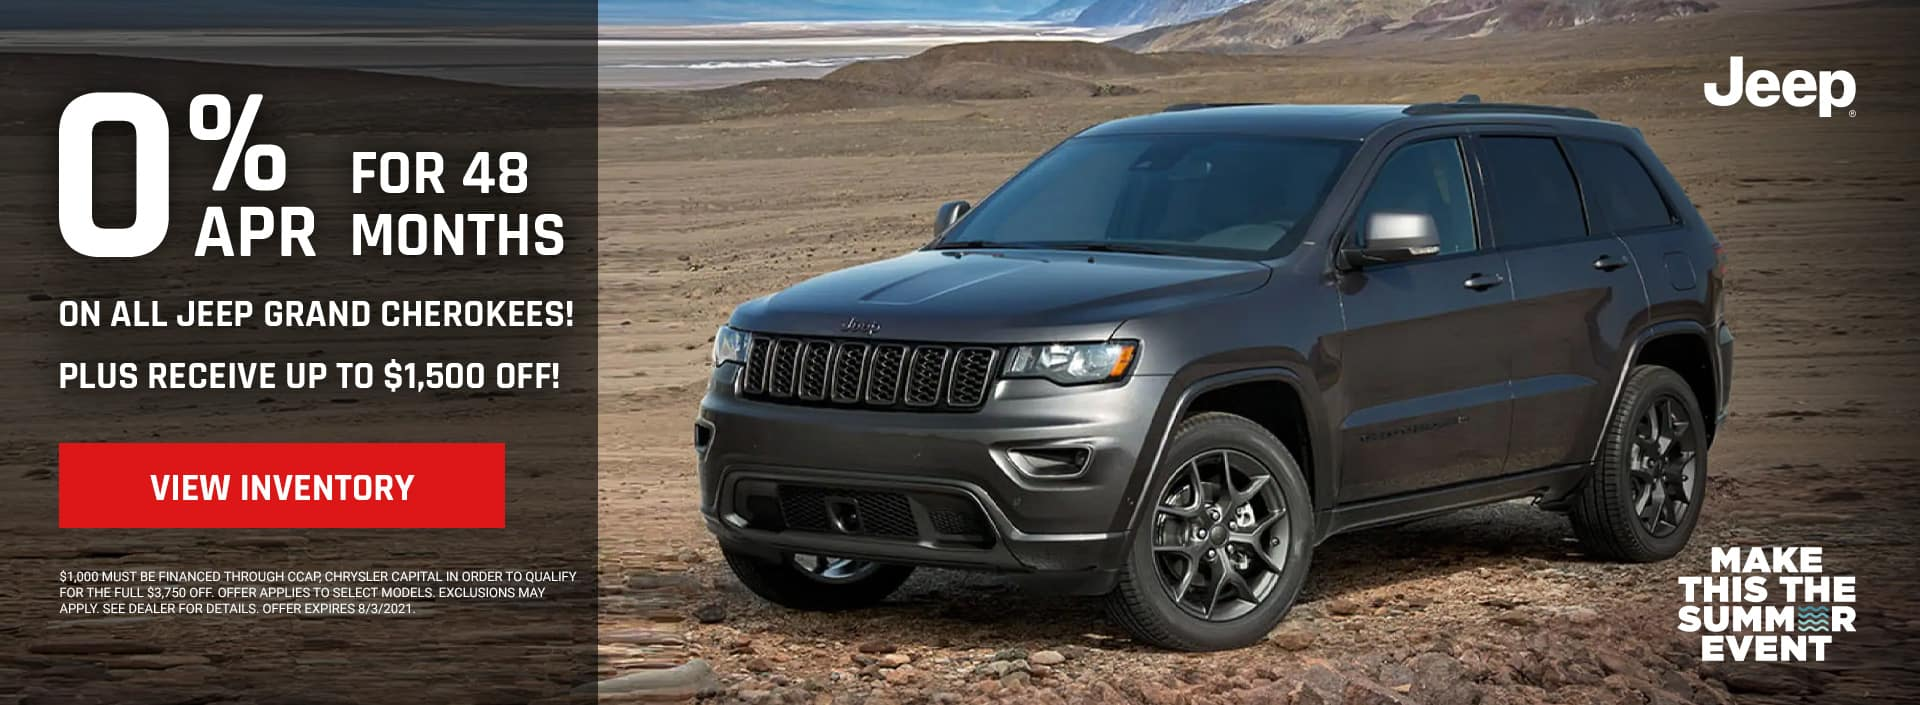 0% for 48 months on all Jeep Grand Cherokees!, Plus receive UP TO $1,500 off!